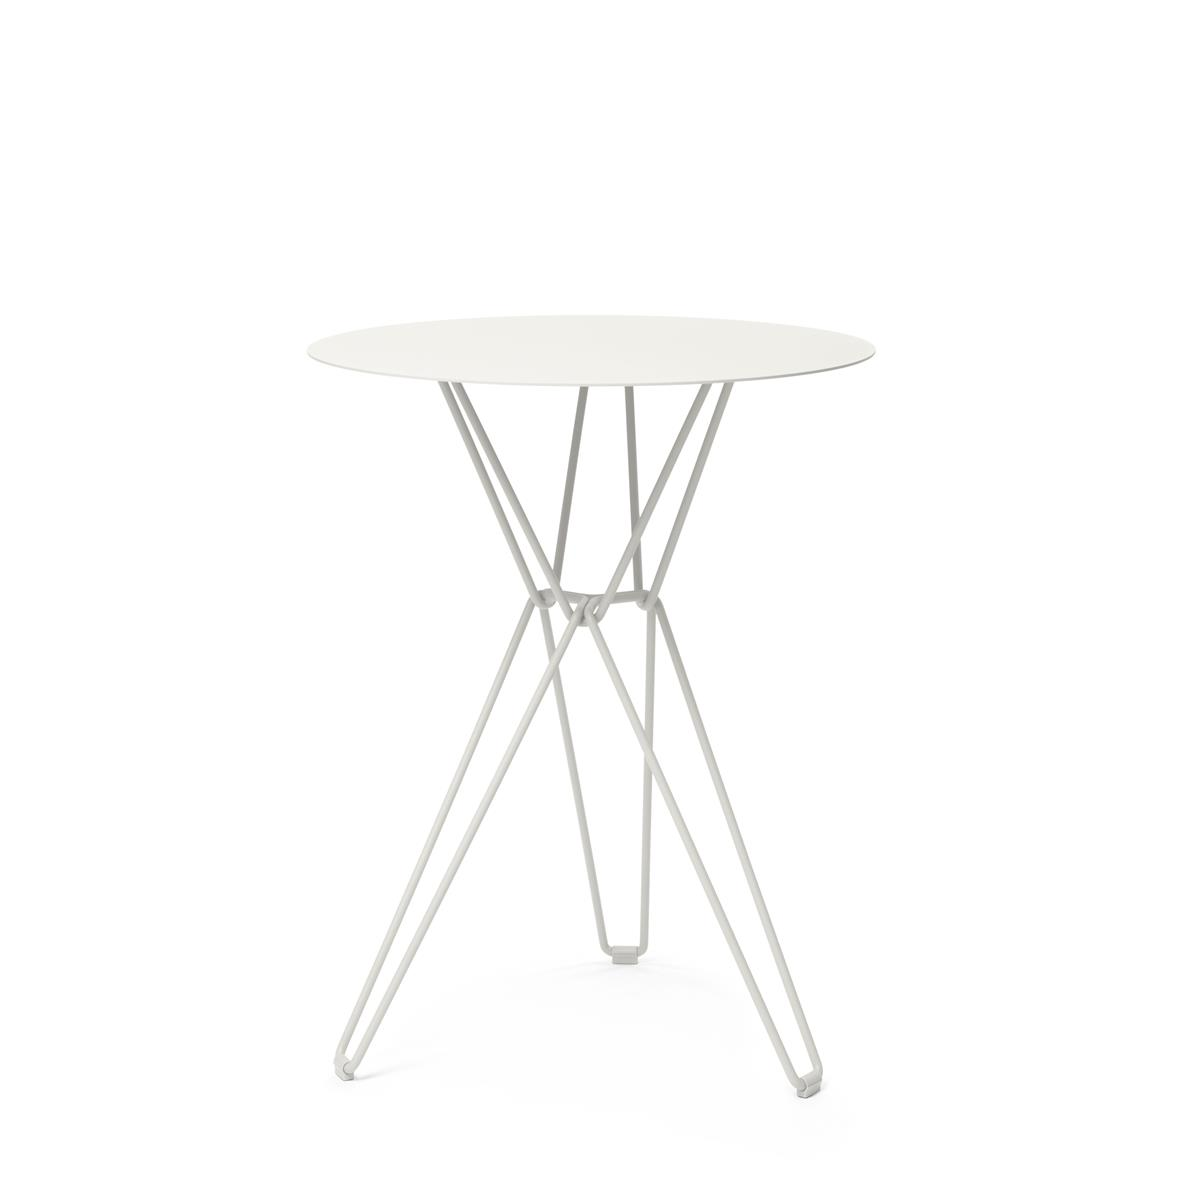 Tio Bar Table Ø75 x H110 cm - White